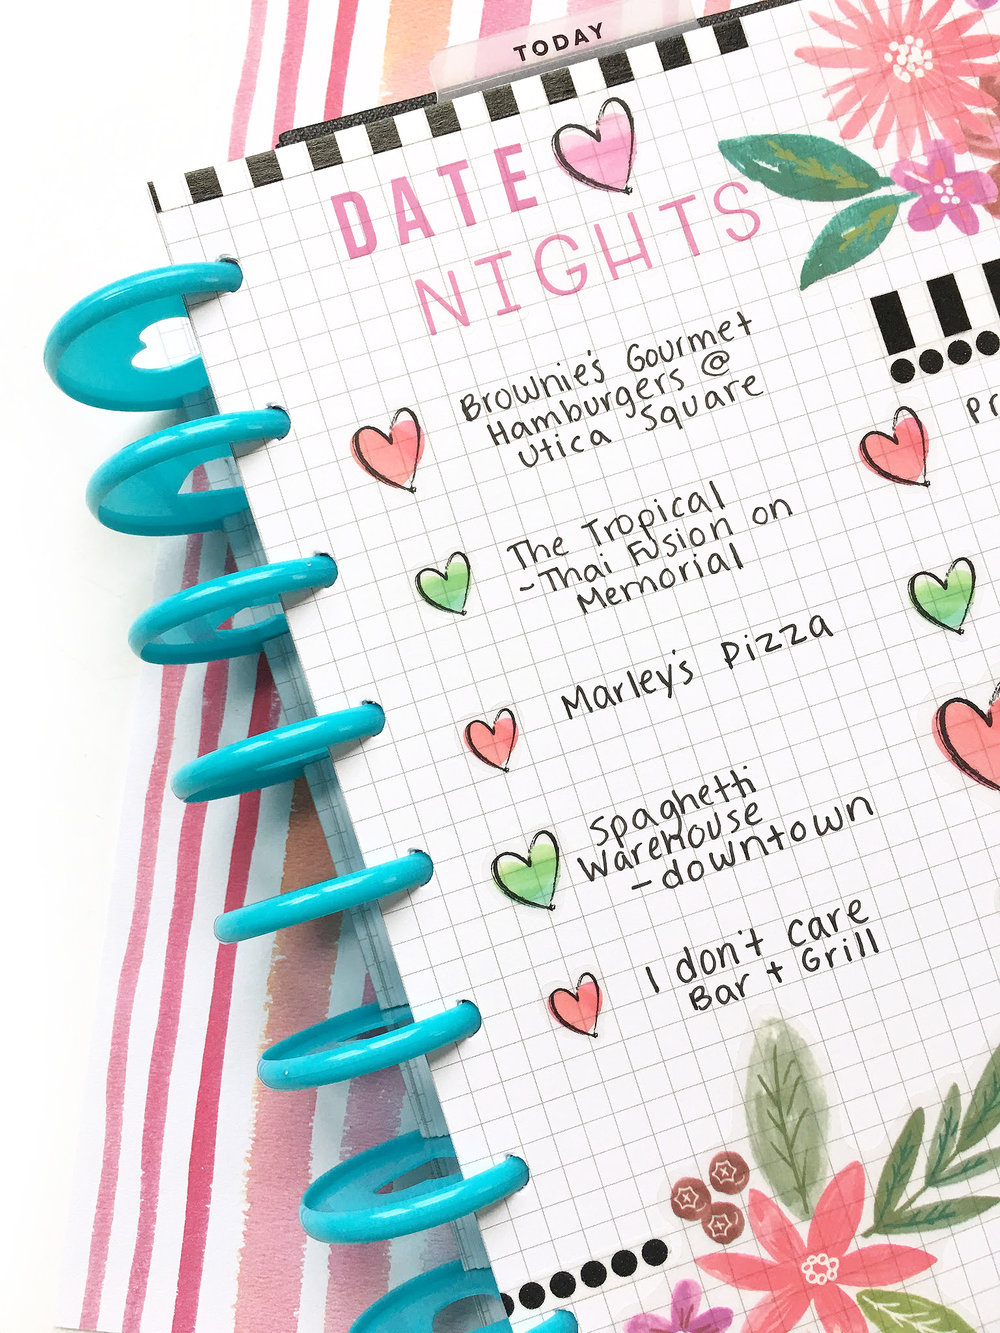 diy date night bucket list using happy planner grid paper me